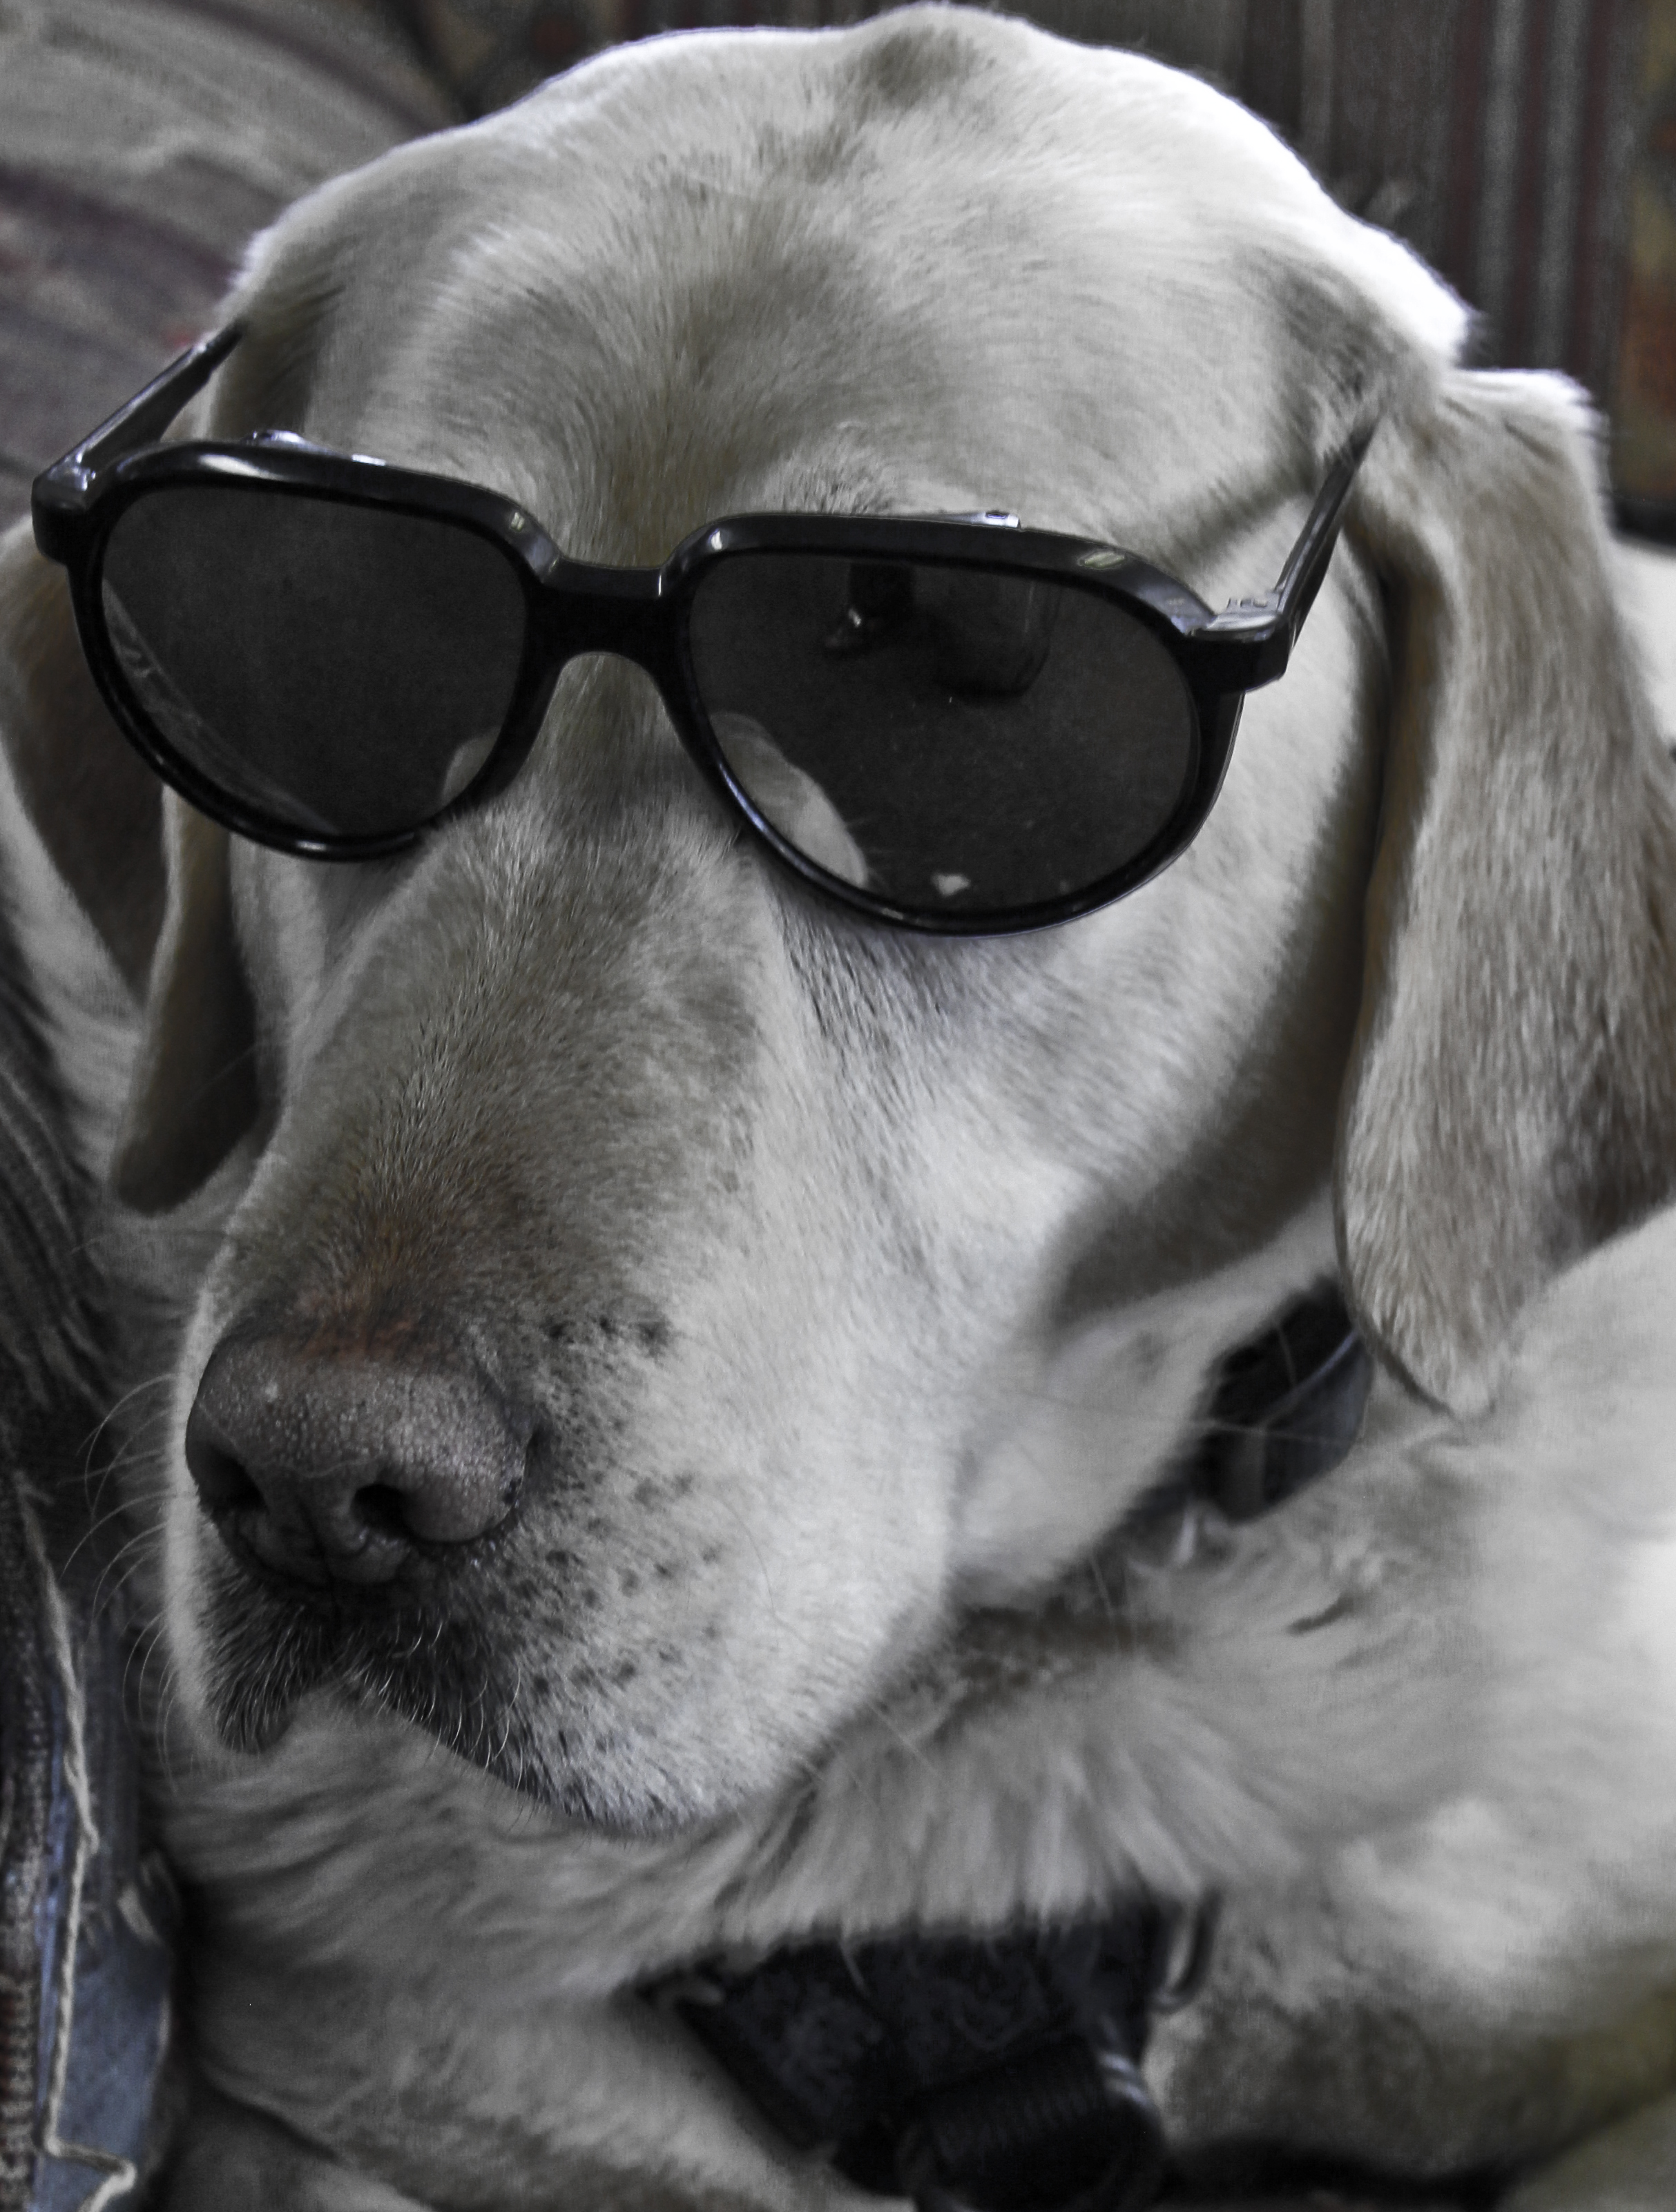 Hattie's just too cool.